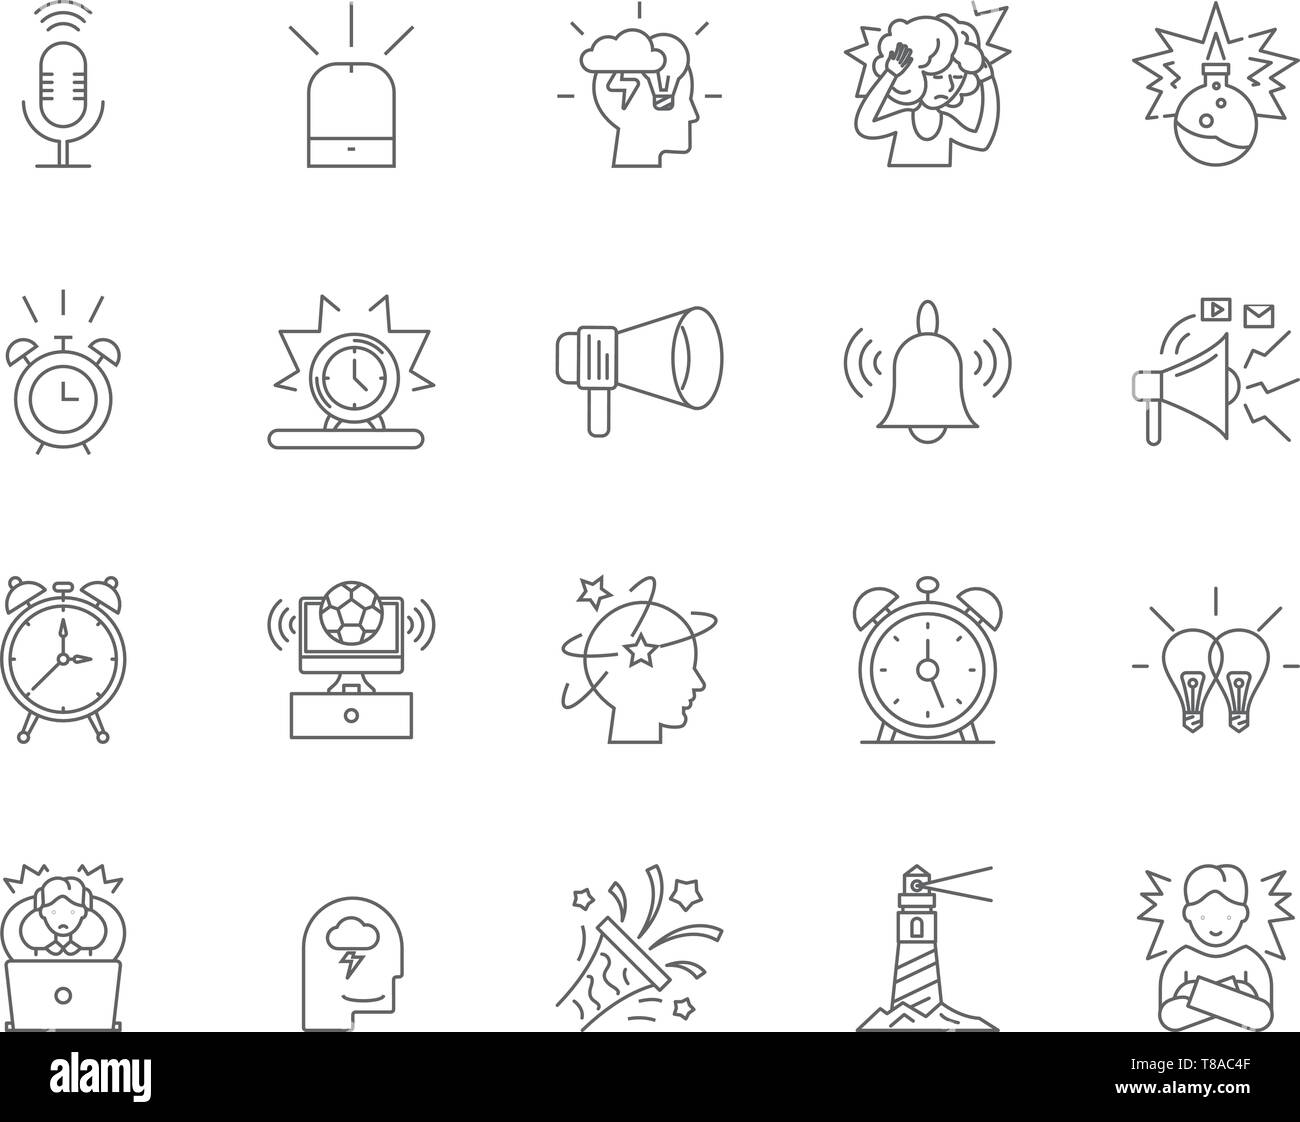 Alarm line icons, signs, vector set, outline illustration concept  - Stock Image